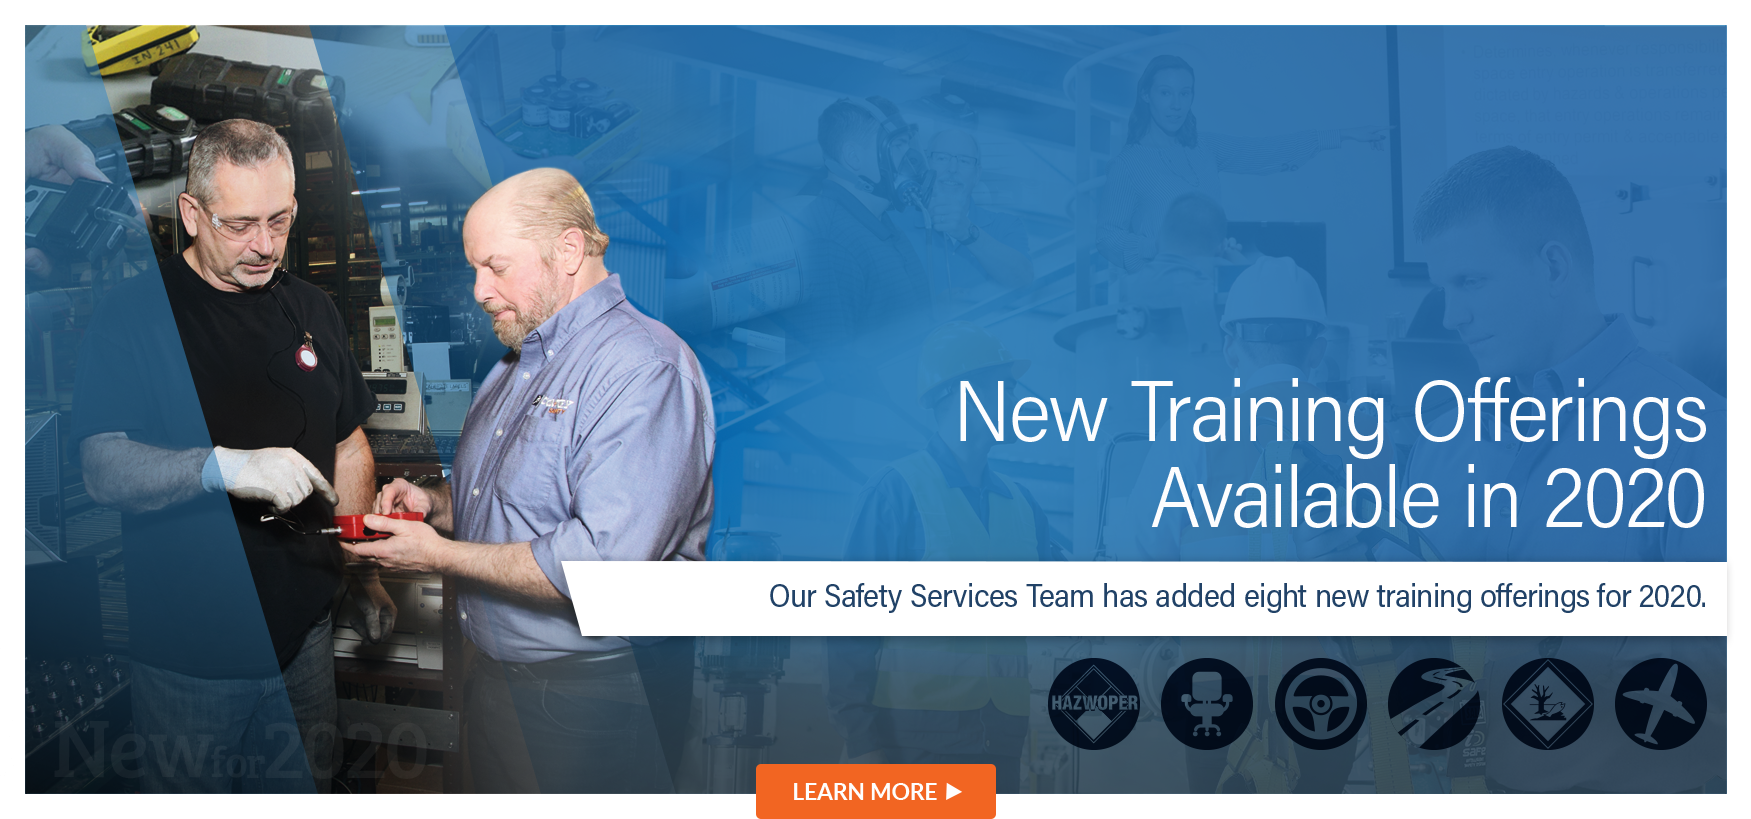 Our Safety Services Team have added New Trainings for 2020.